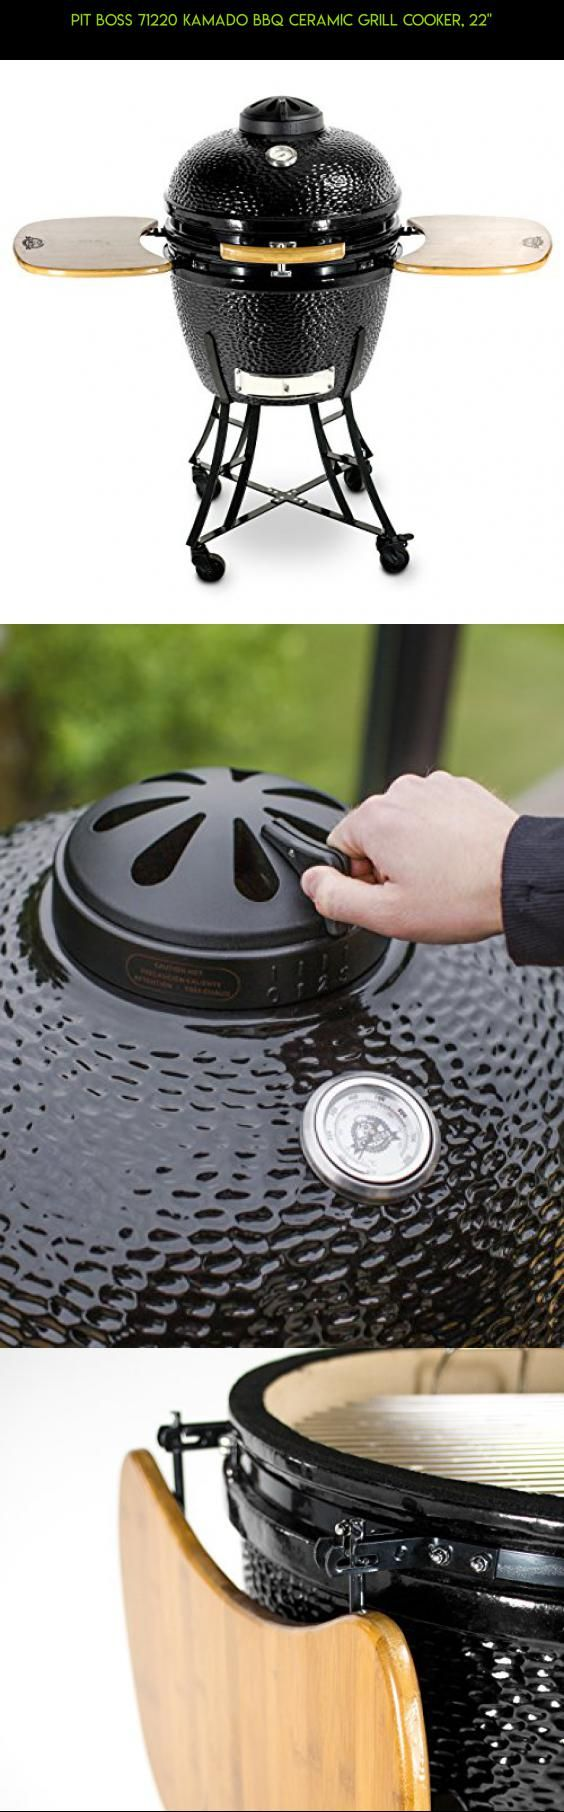 """Pit Boss 71220 Kamado BBQ Ceramic Grill Cooker, 22"""" #grills #drone #camera #shopping #parts #kit #technology #tech #fpv #komodo #products #plans #racing #gadgets"""